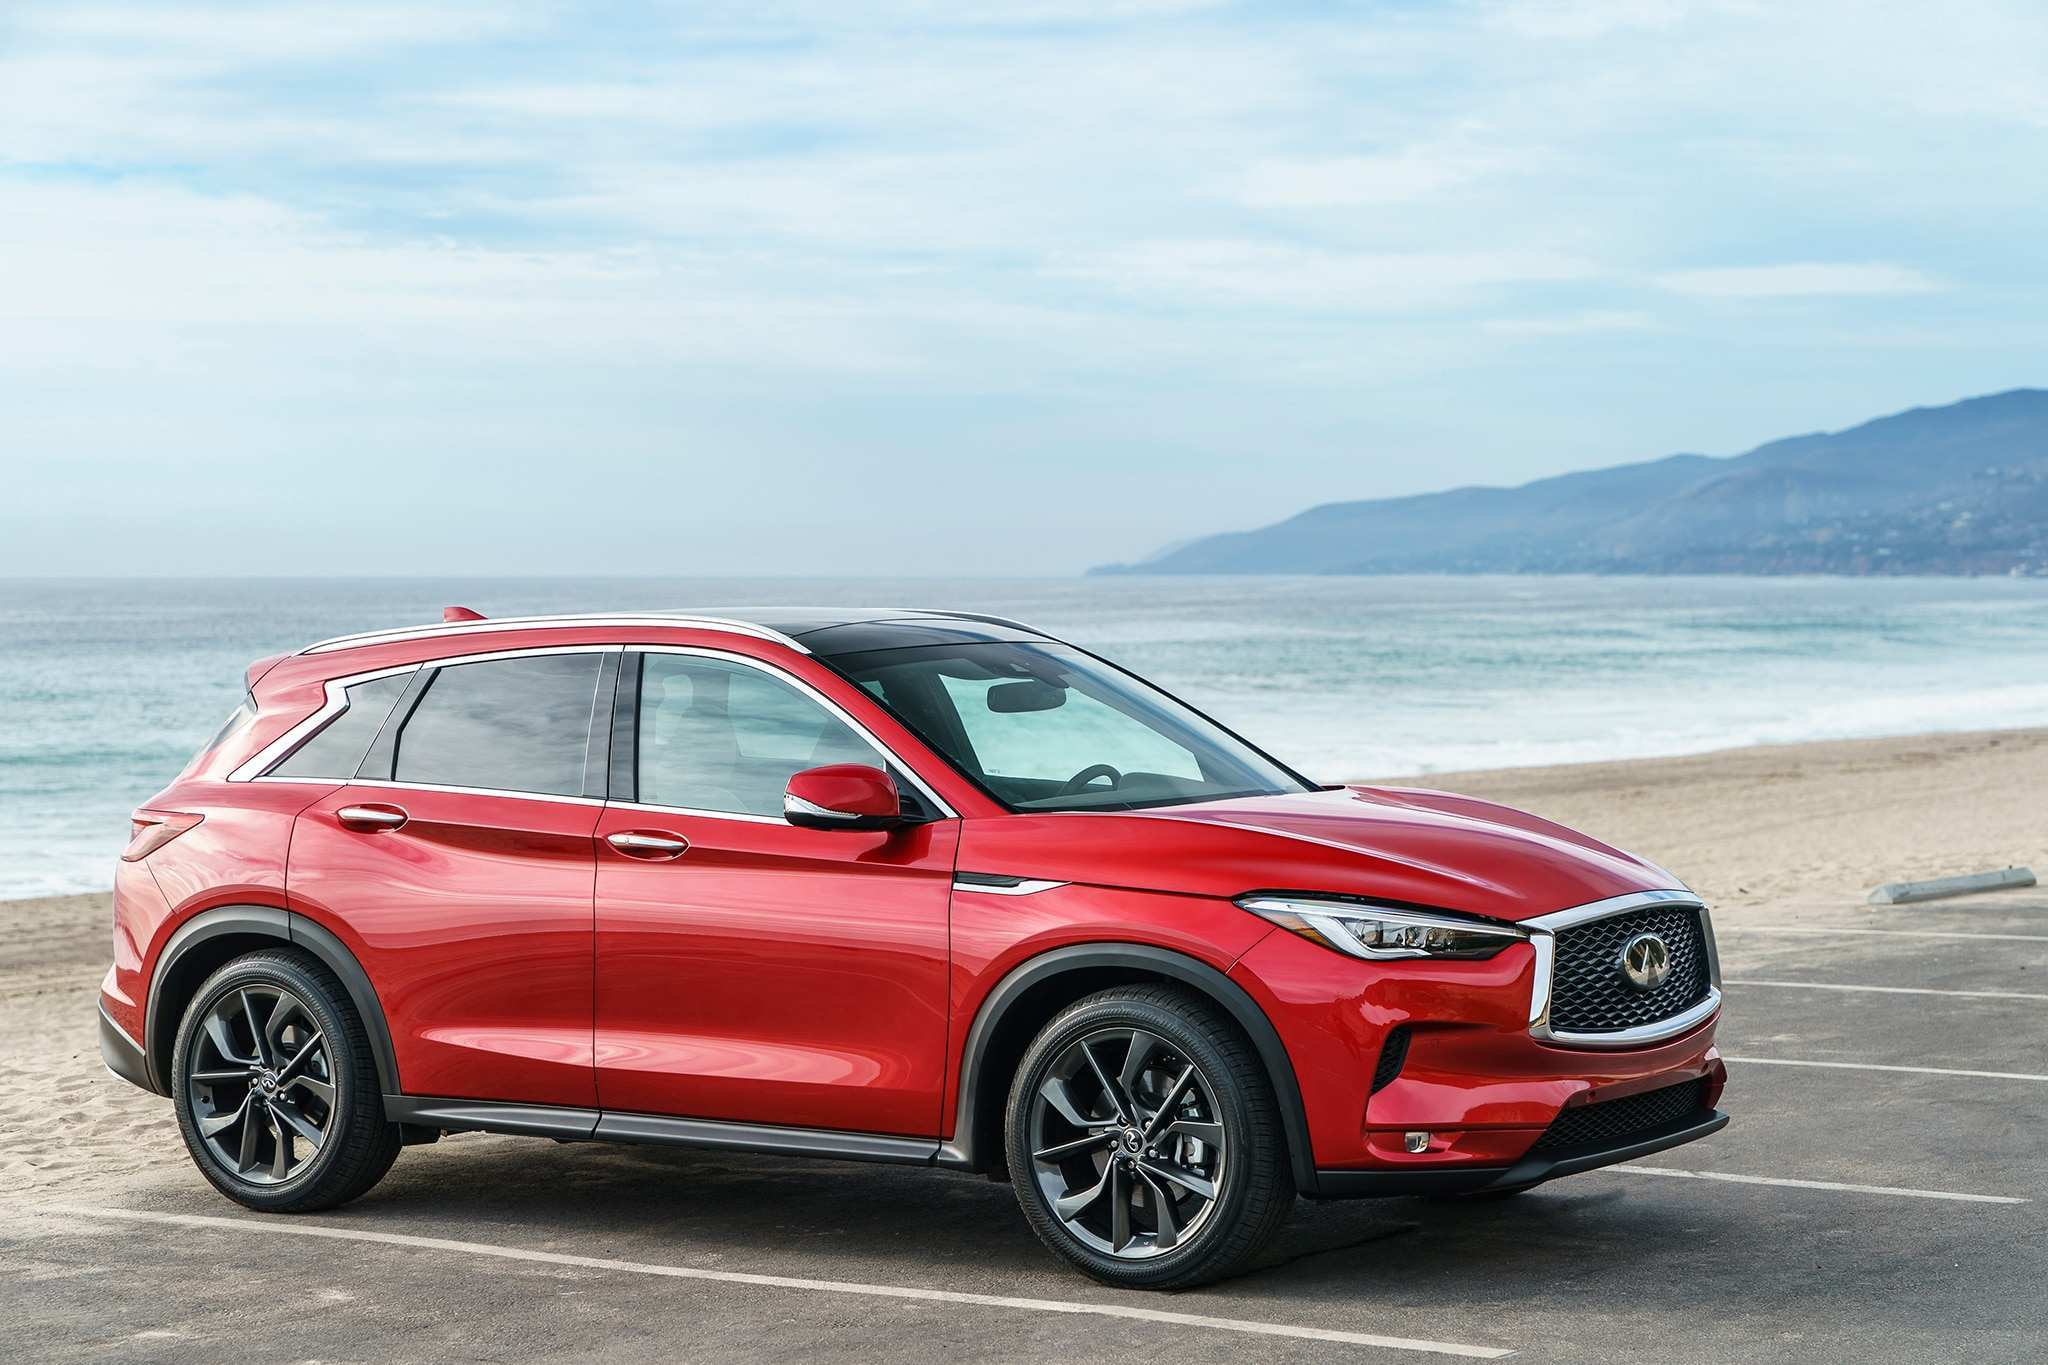 61 Best Review Best 2019 Infiniti Qx50 Autograph Price Speed Test for Best 2019 Infiniti Qx50 Autograph Price